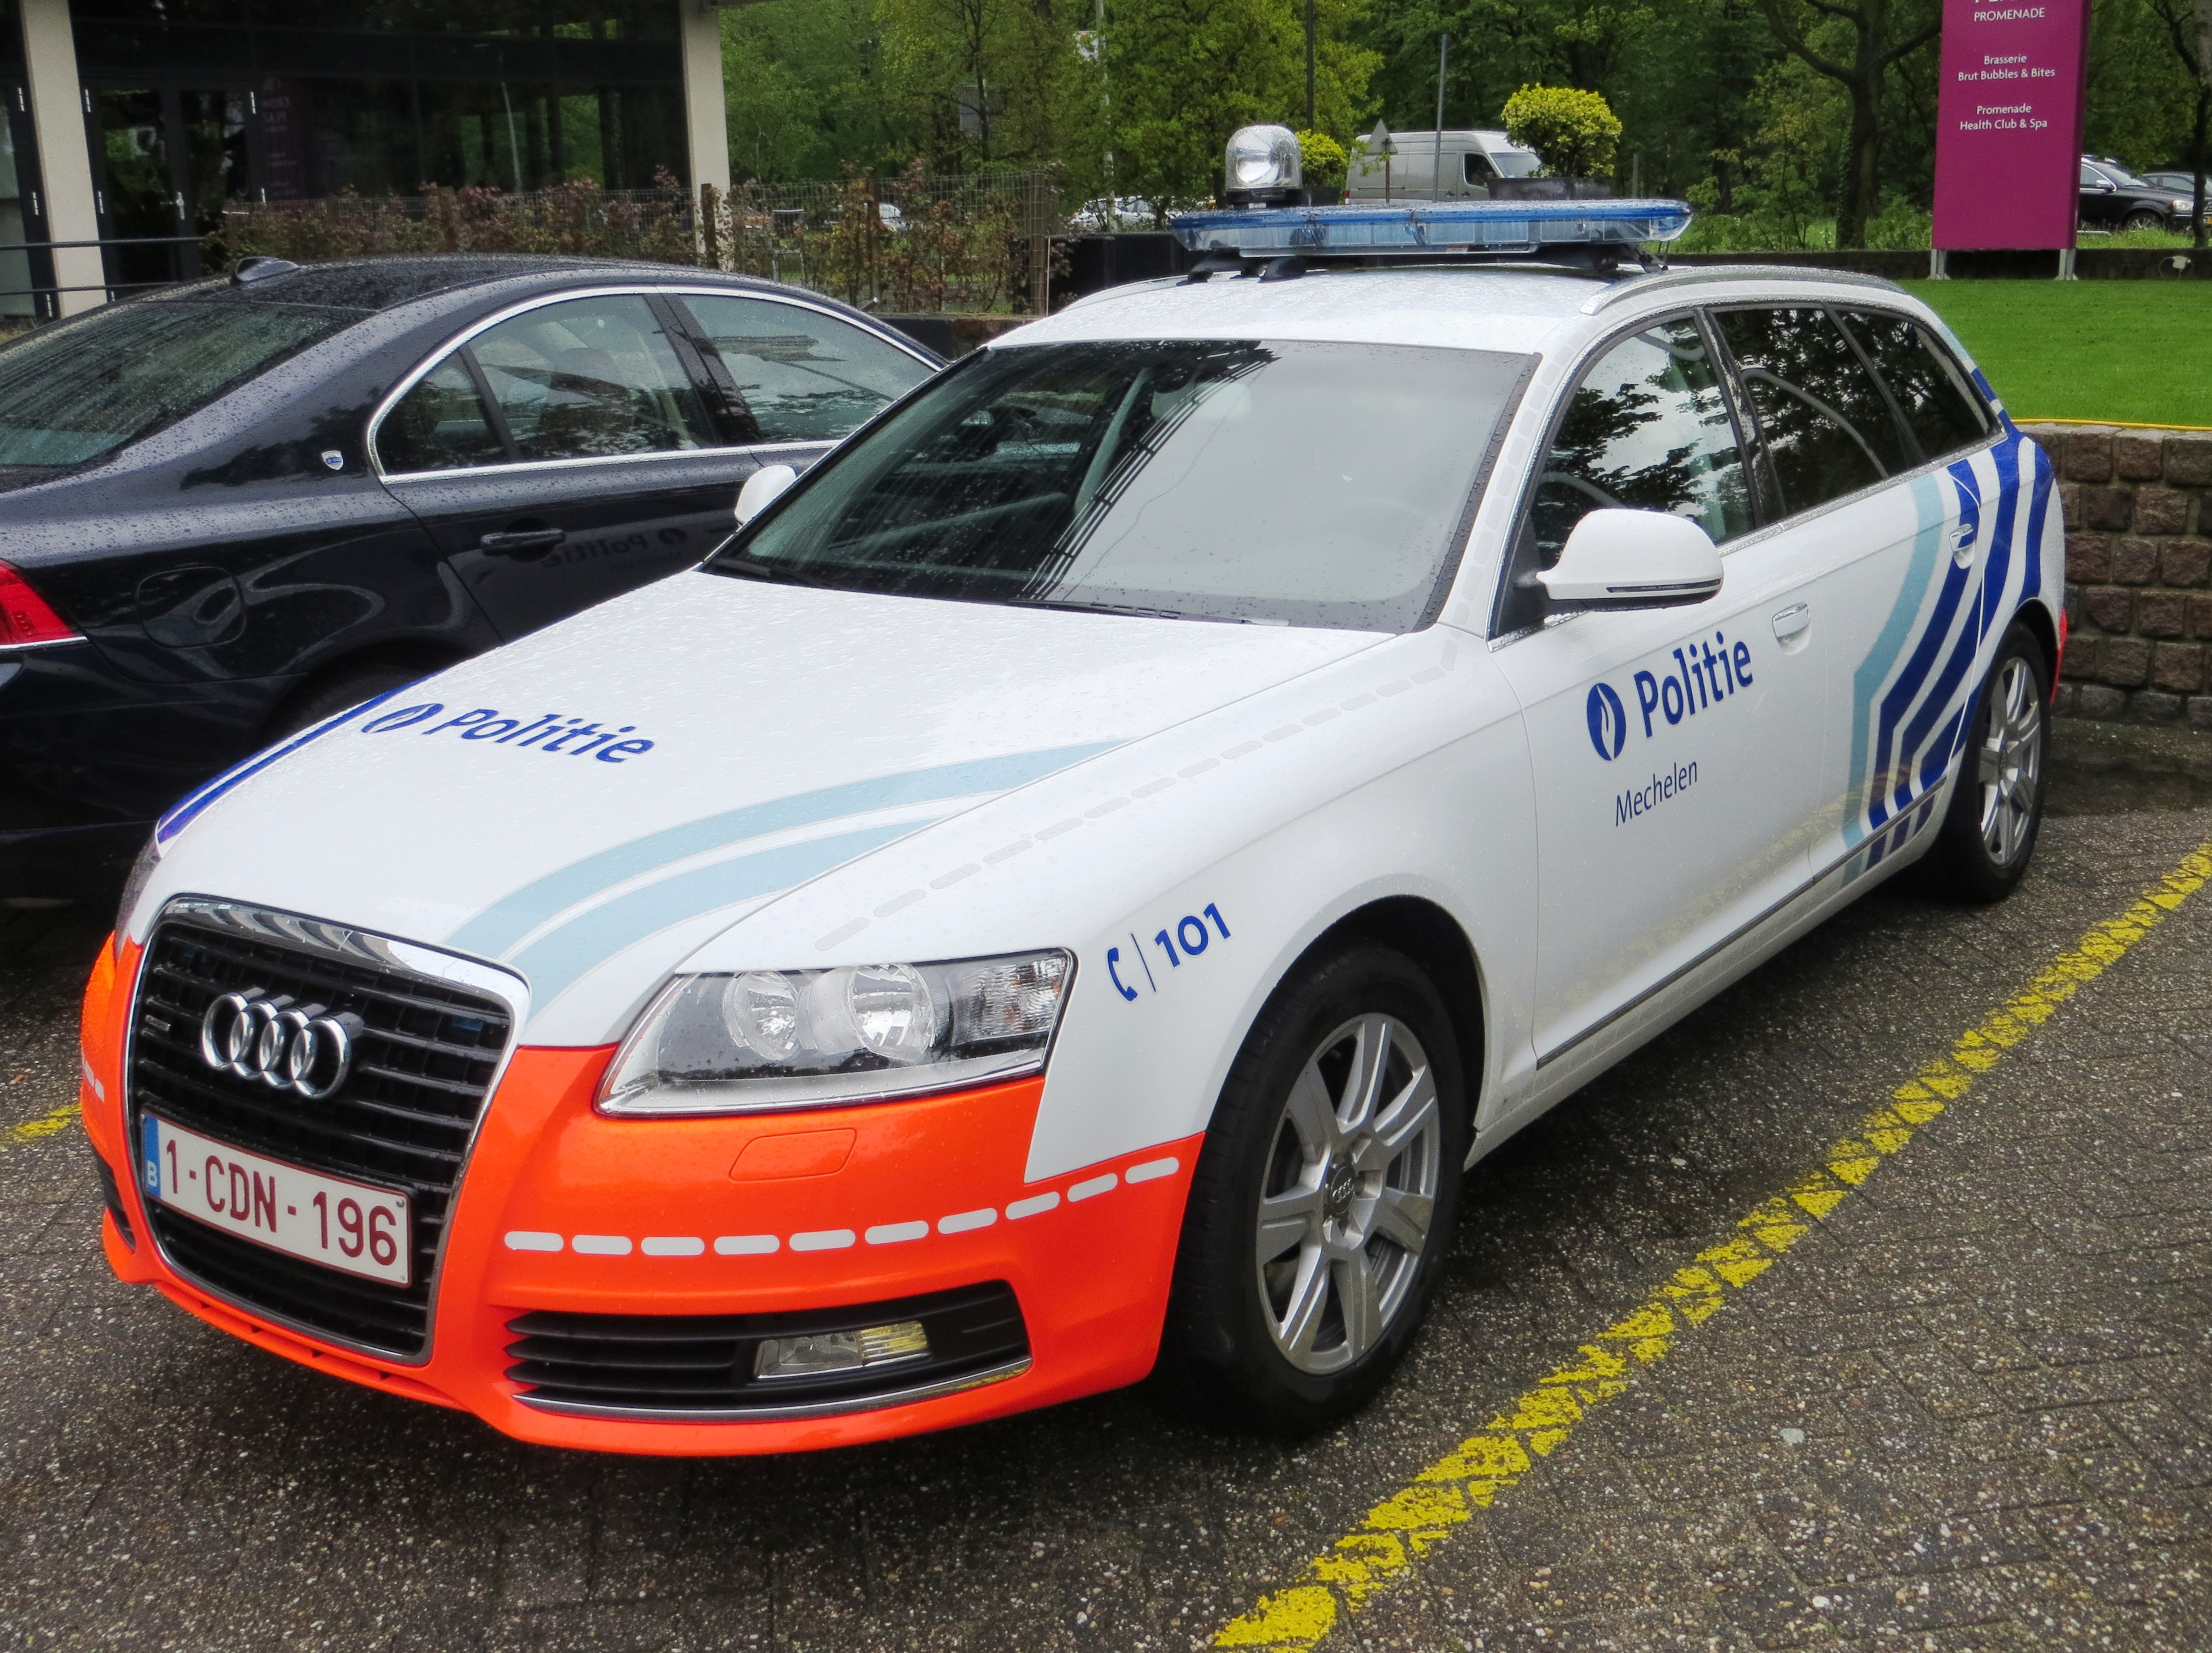 police image Police cruiser image database 37k likes page where we post photos of police cruiser user submission are welcomed we will always give photo credit to.